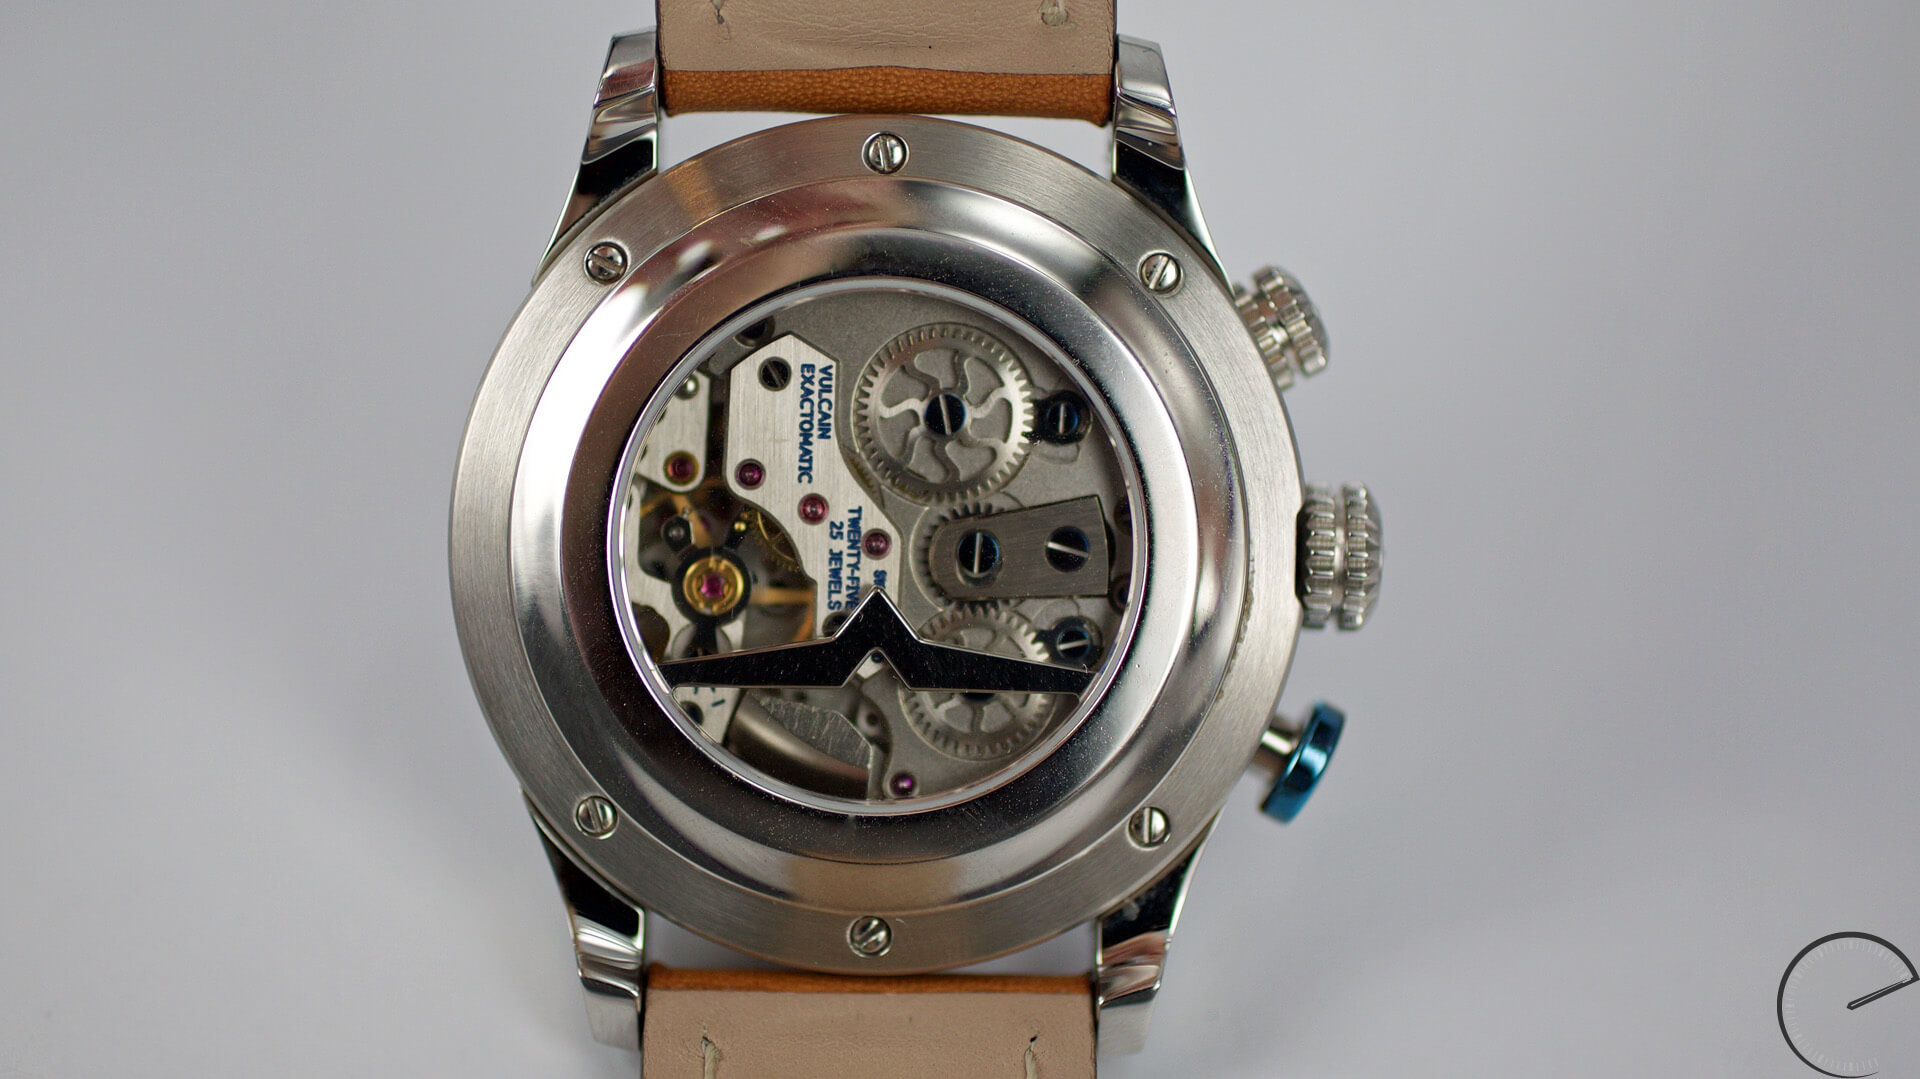 Vulcain_Aviator_Instrument_Cricket_Caseback - ESCAPEMENT watch news by Angus Davies